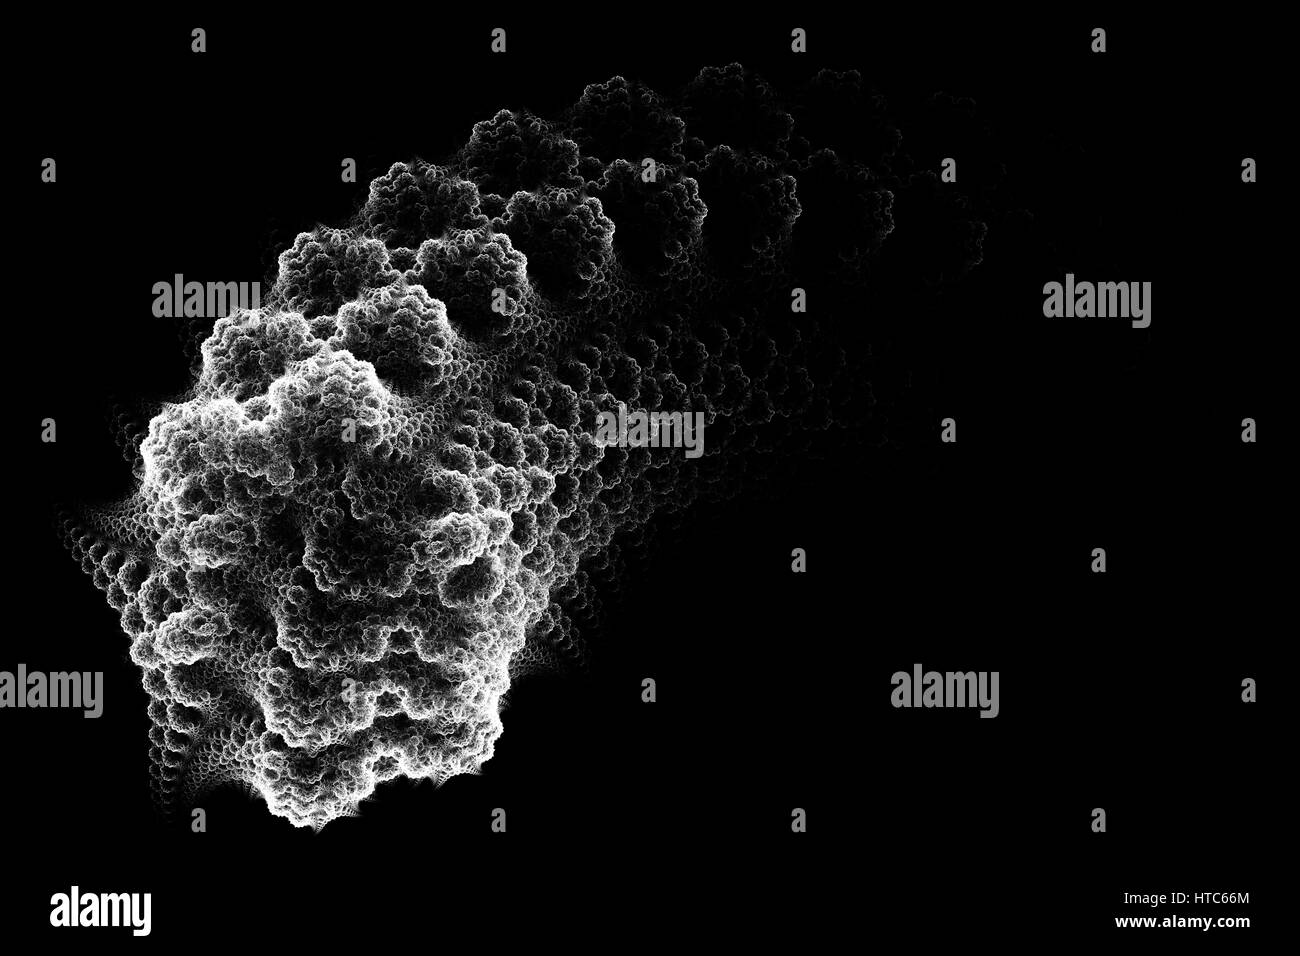 Black and white germ. Micro organism. Abstract background. Isolated on black background. - Stock Image